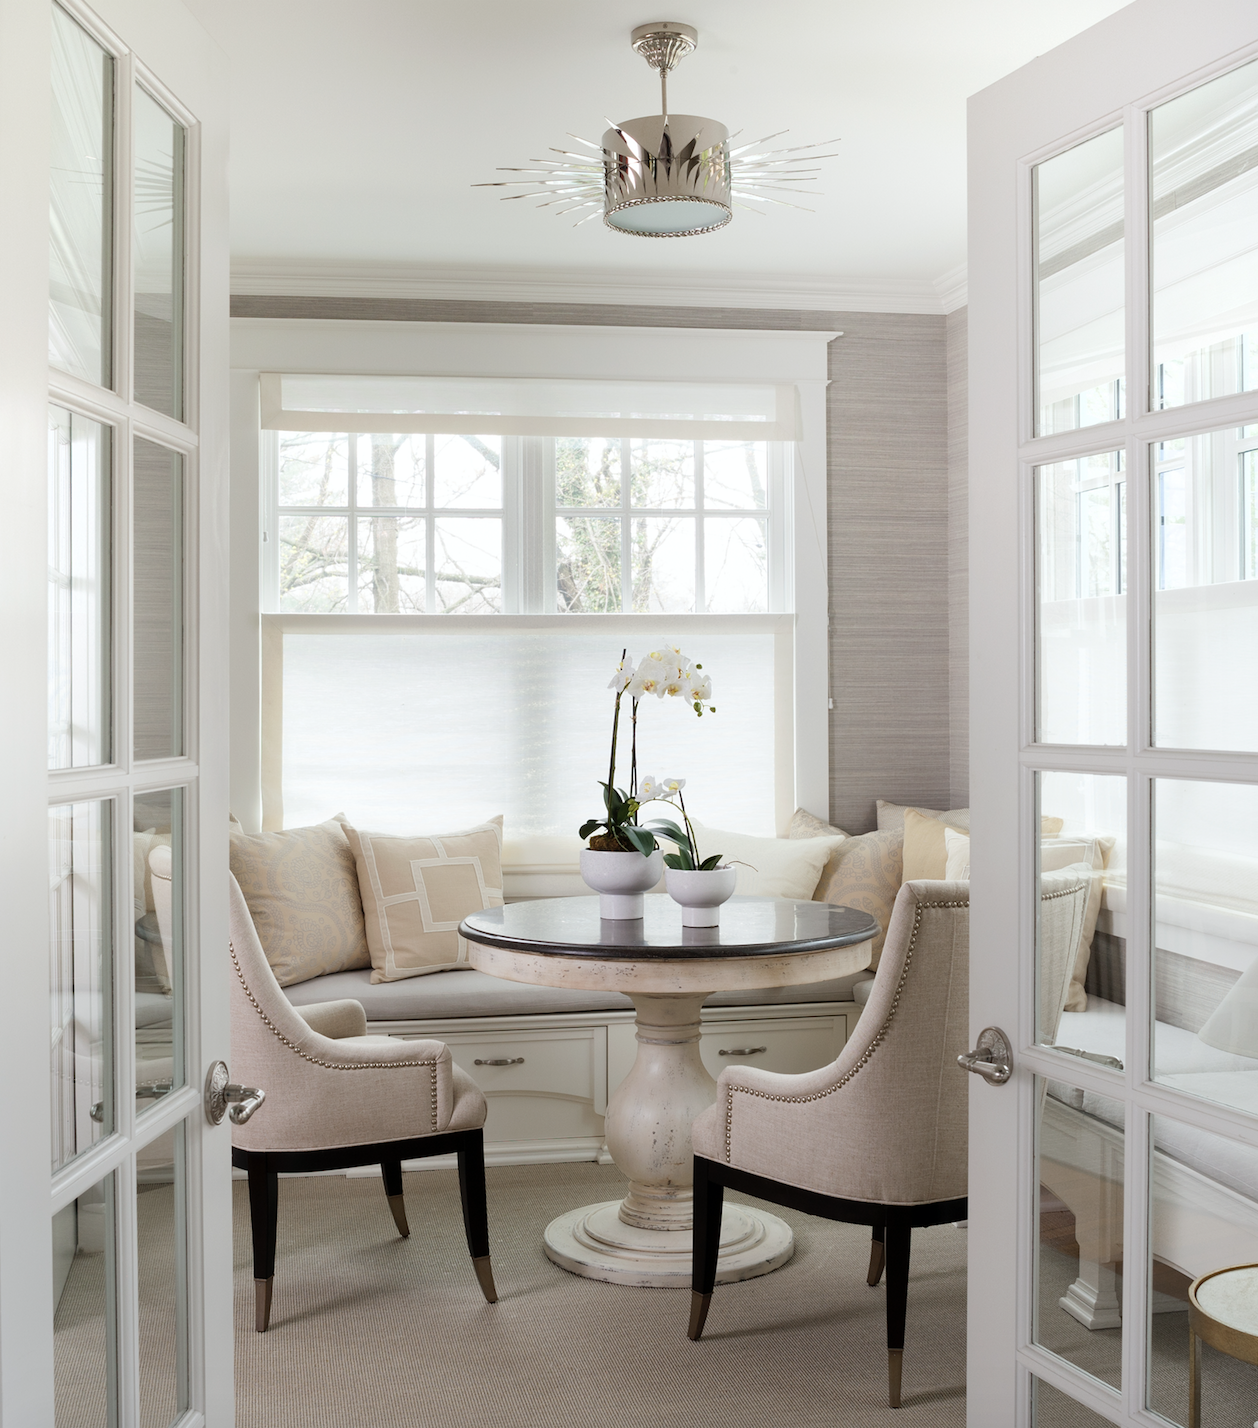 Full Service Interior Design - Hourly at $150/hourAfter the Design Consultation, you can hire Breeze Giannasio Interiors for Full Service Interior Design. This luxury service provides all of the elements needed to complete your entire home or fully furnish rooms in your home.